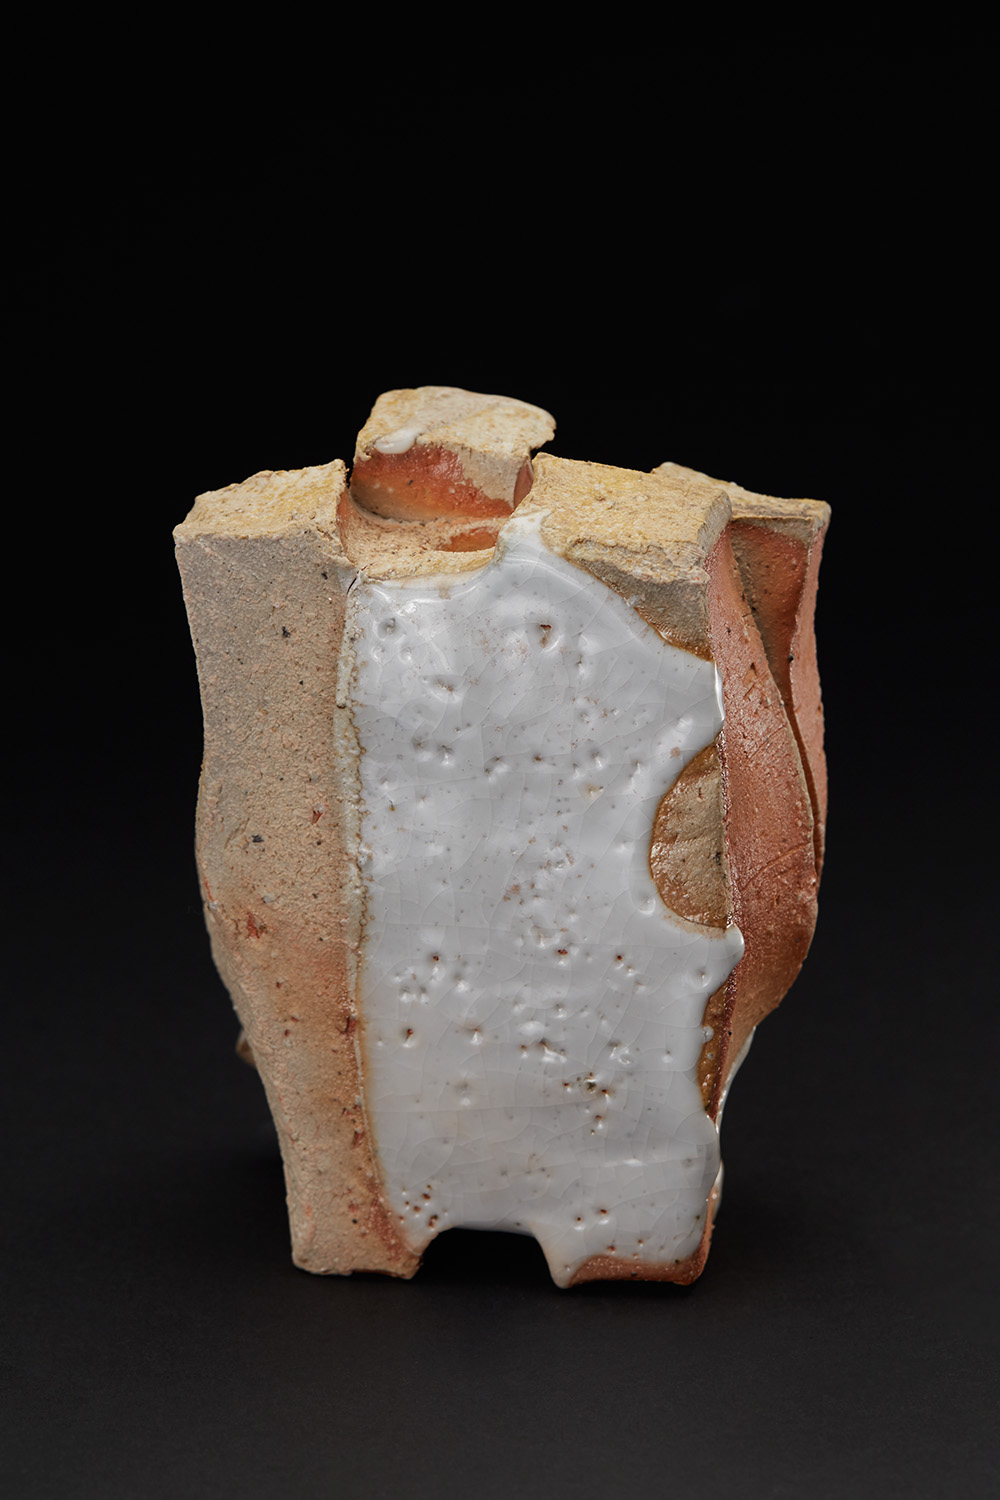 Shozo Michikawa  Small Twist Form  , 2011 Stoneware with Shino glaze 5.75 x 4 x 2.5 inches 14.6 x 10.2 x 6.4 cm SMi 28